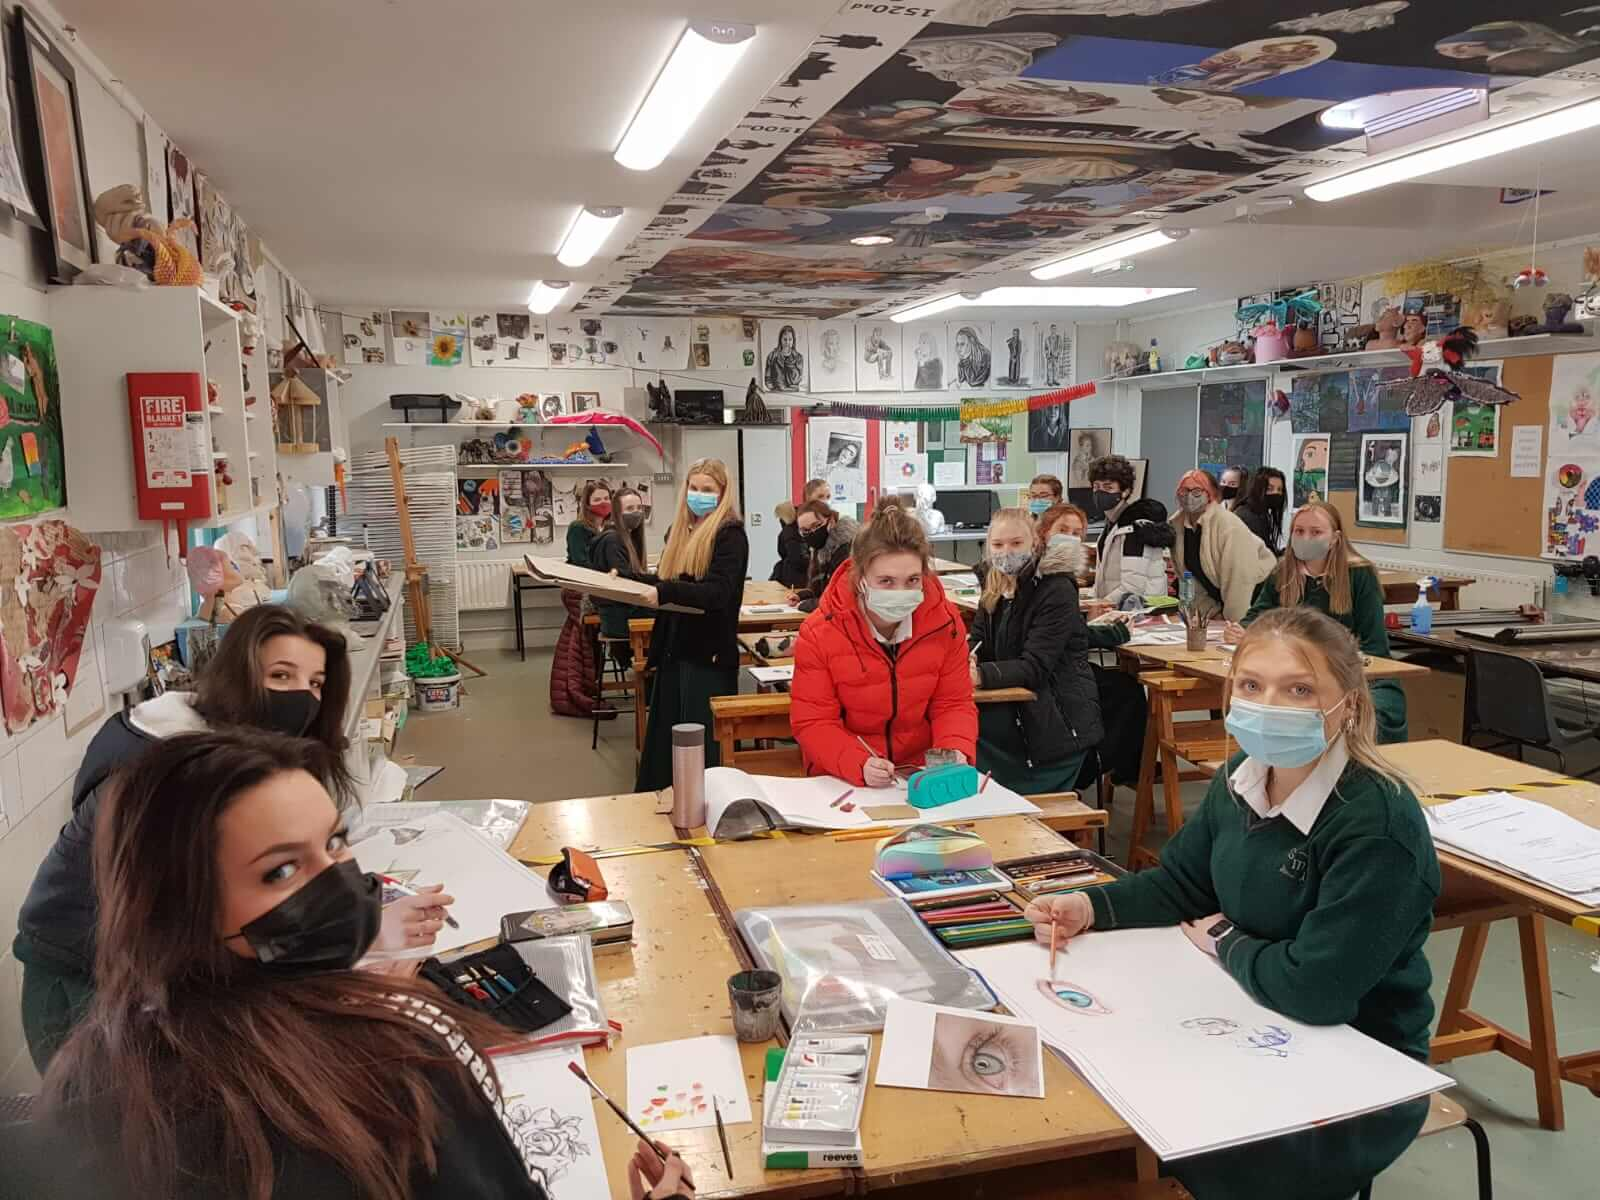 6th Year Scoil Mhuire agus Ide Art Class reach 'Fresh Film Final'